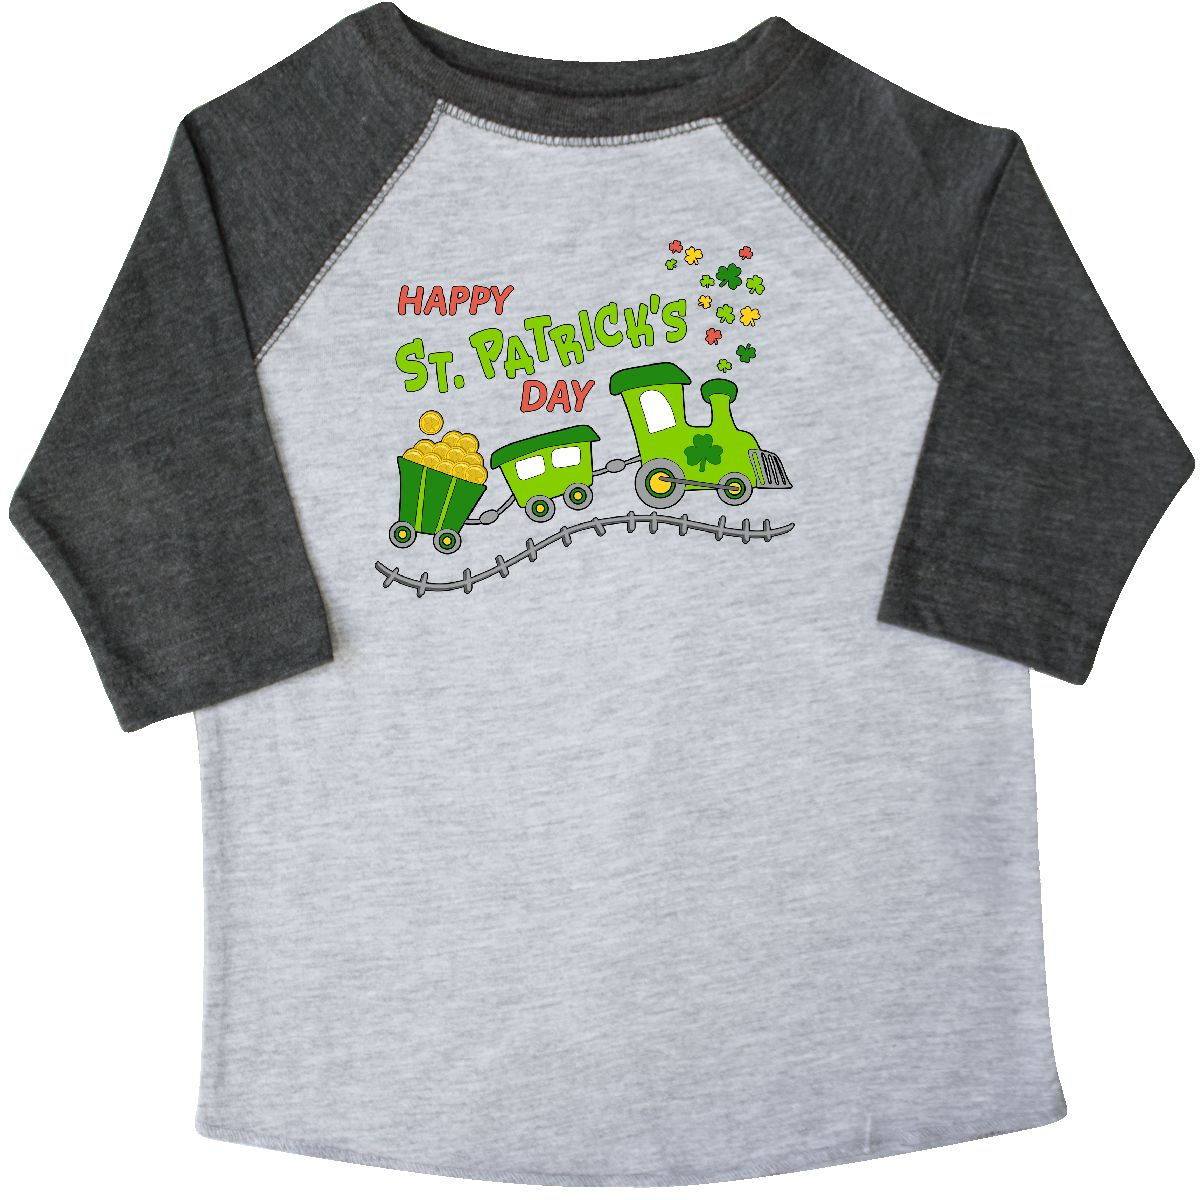 Inktastic Happy St. Patrick's Day Shamrock Train Toddler T-Shirt St. Patrick Pot